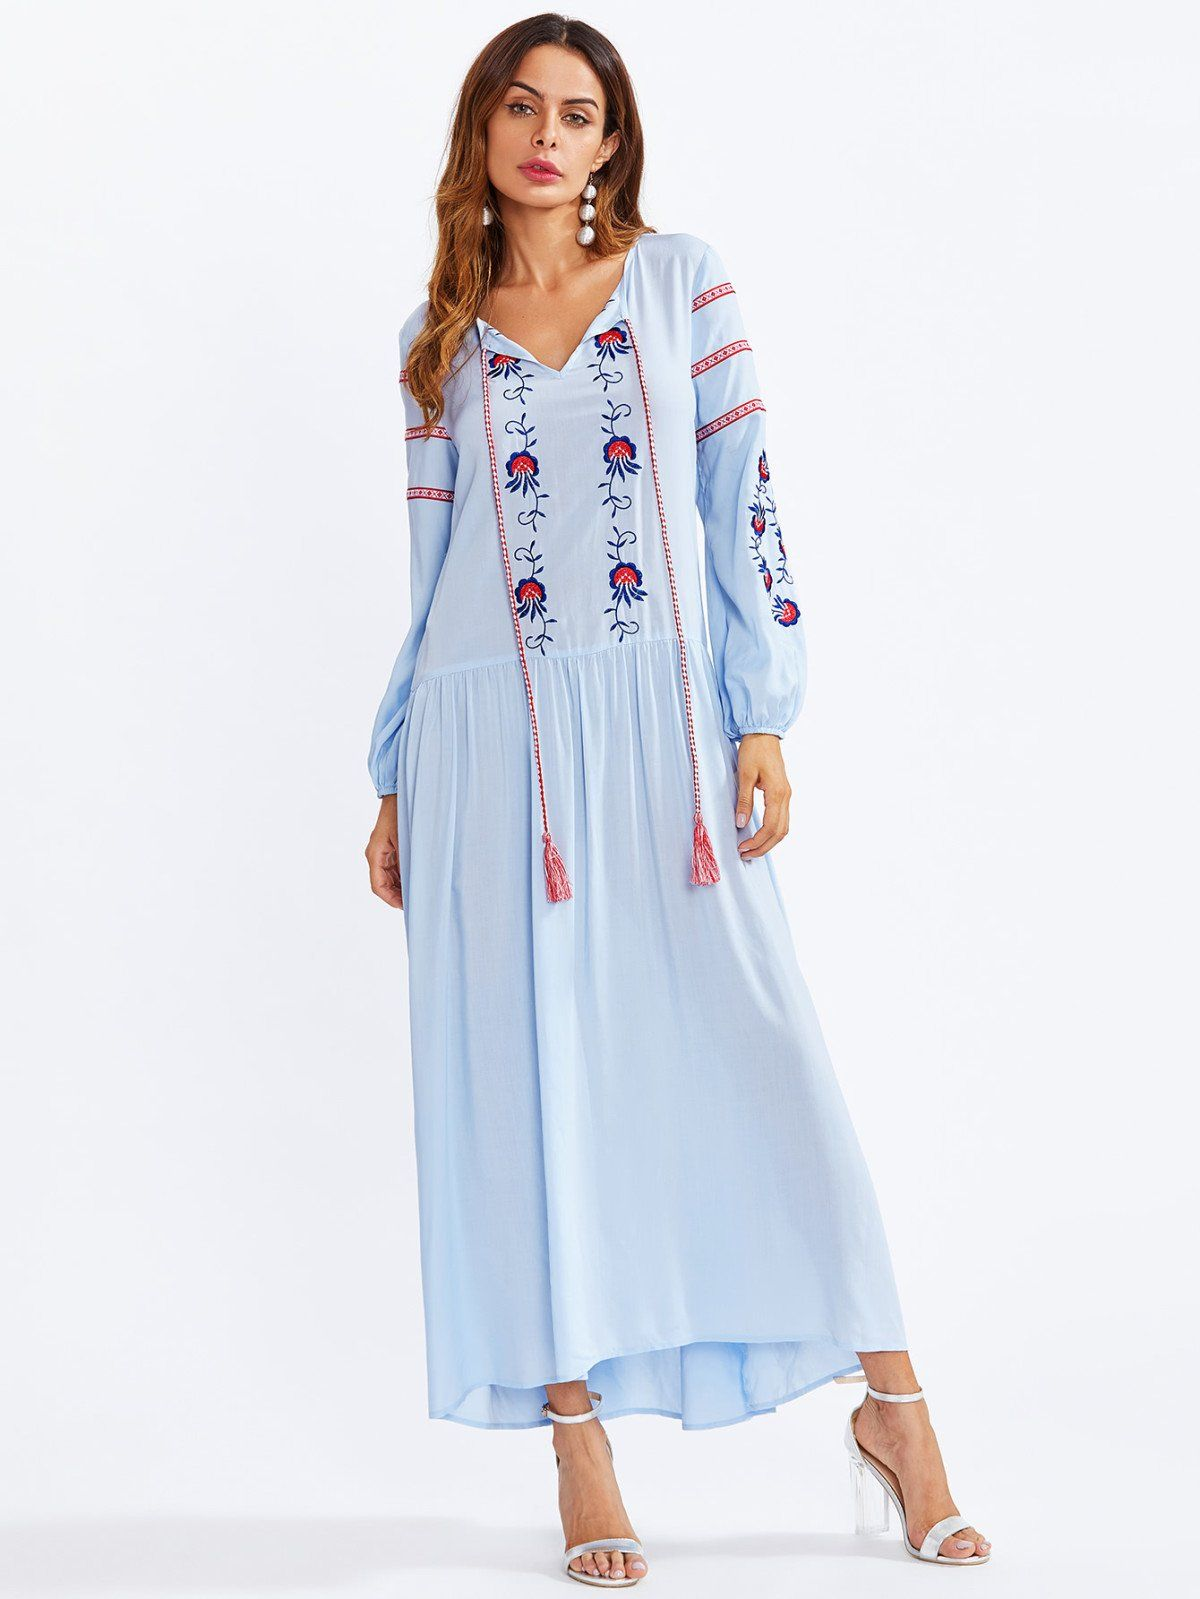 Tasseled tie neck embroidered smock dress tassels vacation wear